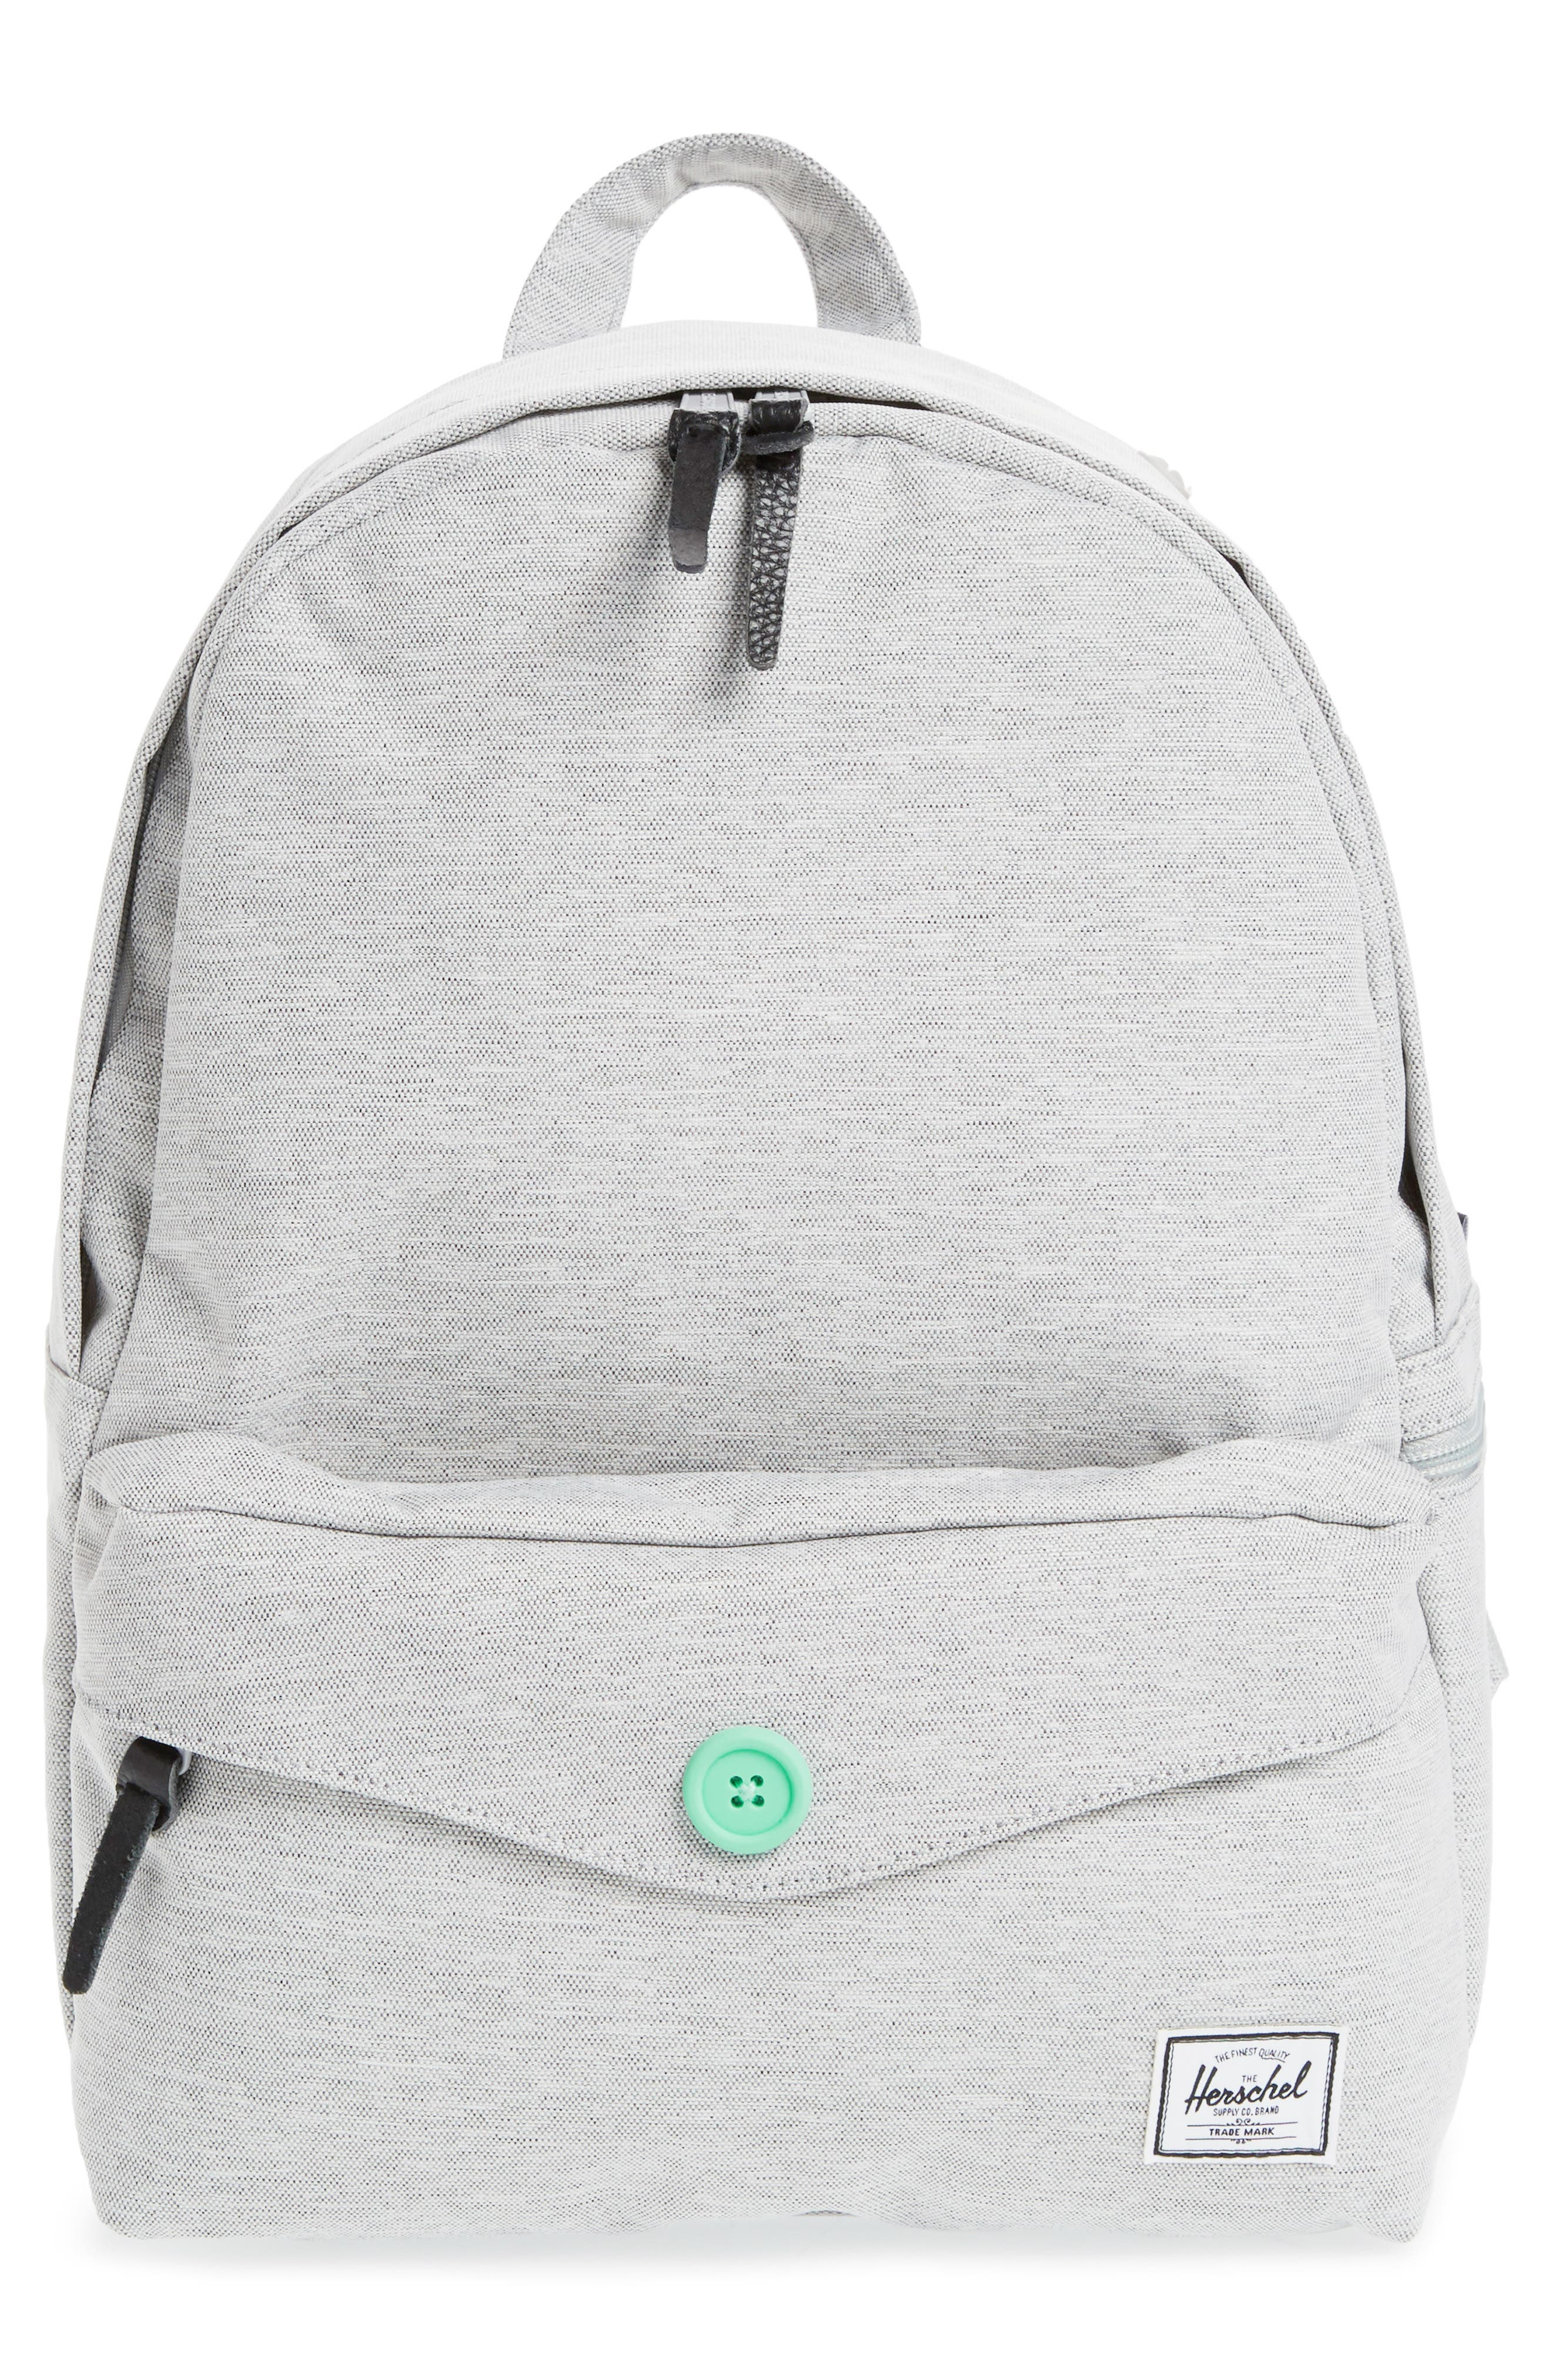 'Sydney' Backpack,                         Main,                         color, 020